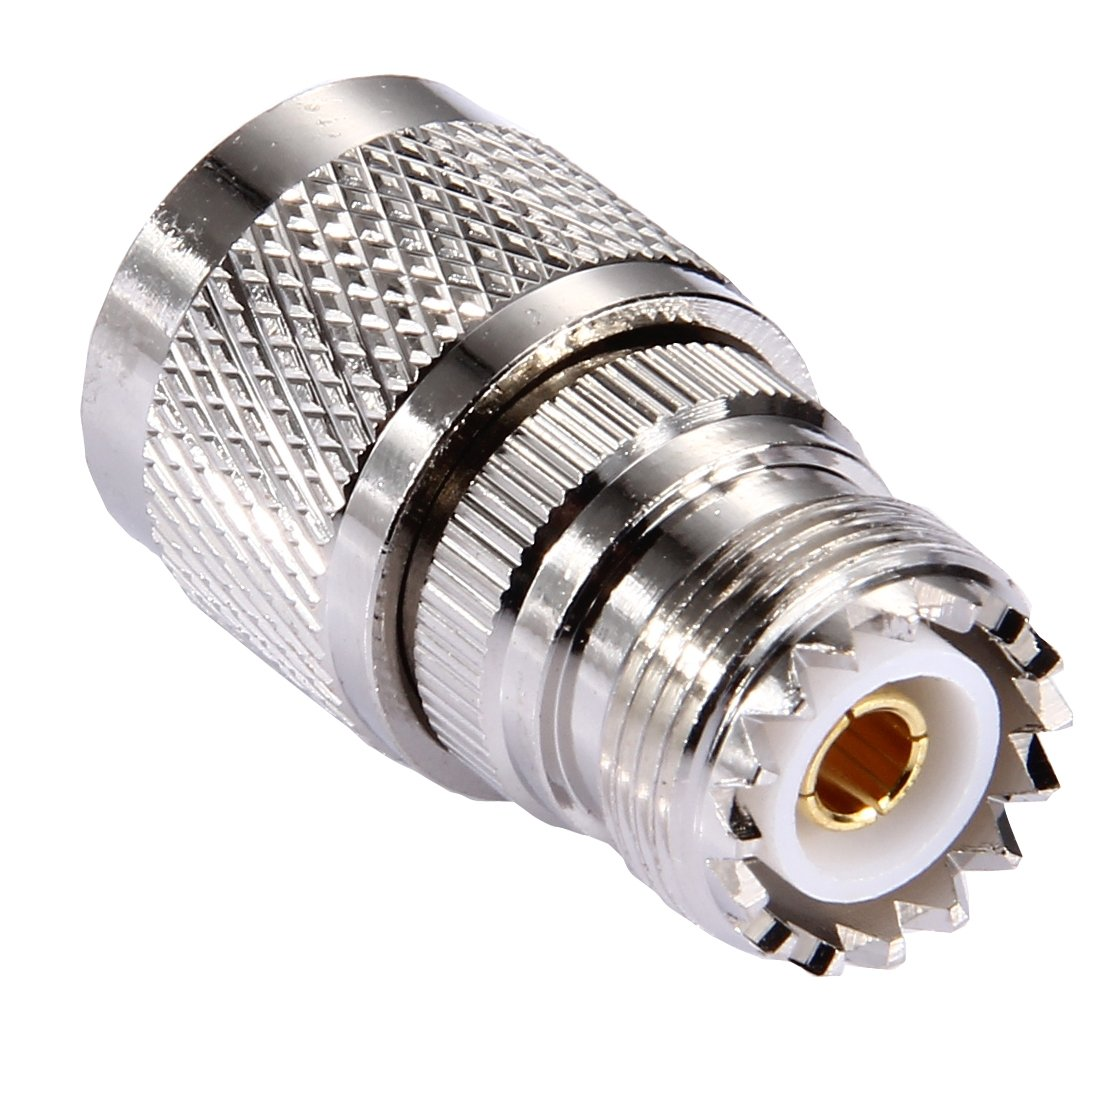 JINYANG Excellent N Male to UHF Female Connector